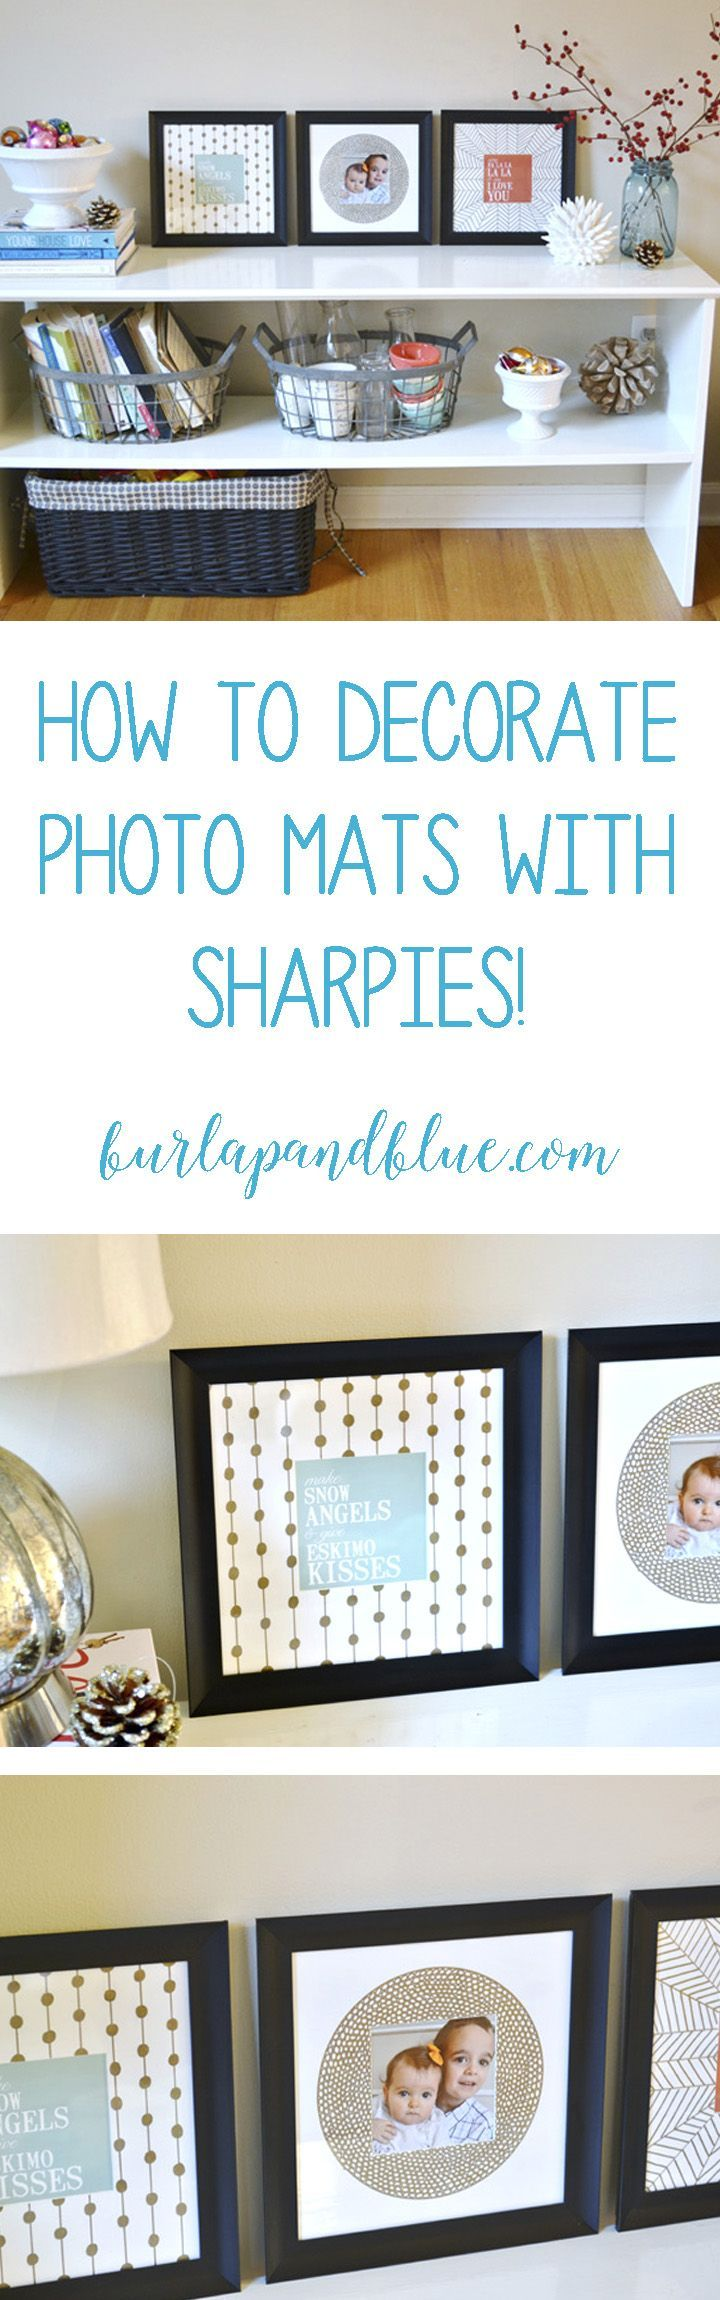 how to decorate photo mats with Sharpie   Pinterest   Decorated ...